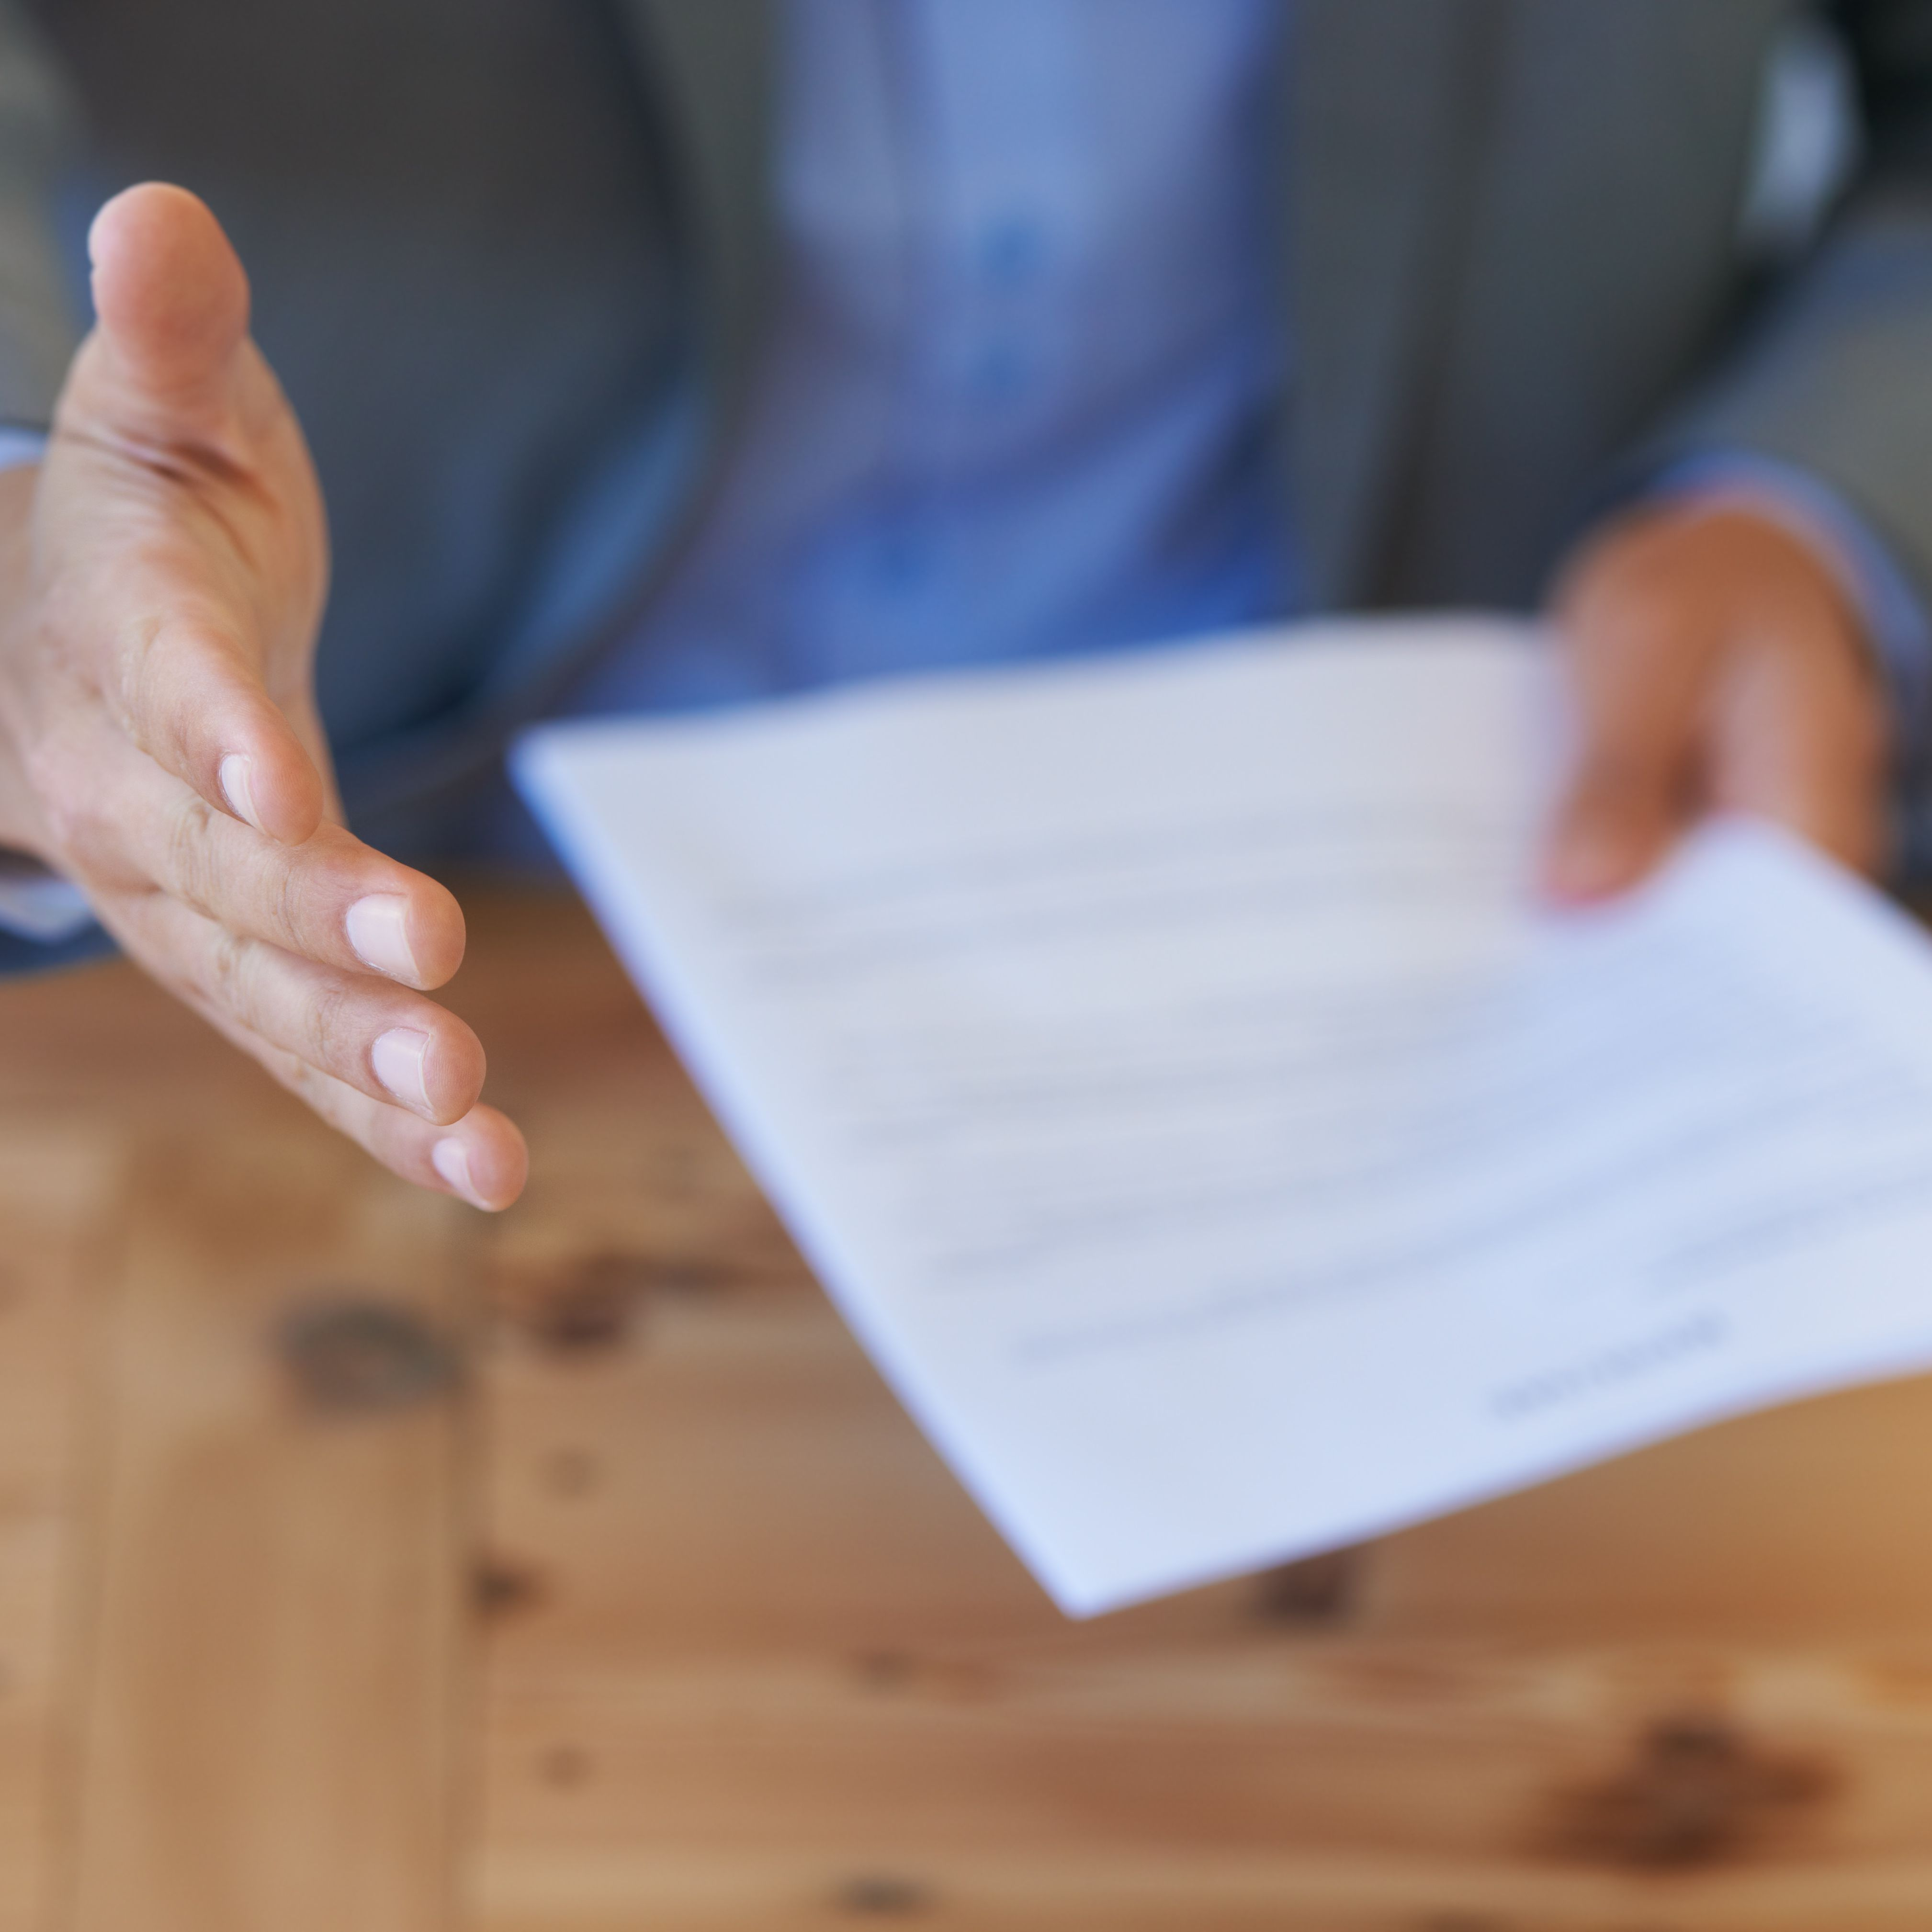 Tips for Asking for Time to Consider a Job Offer